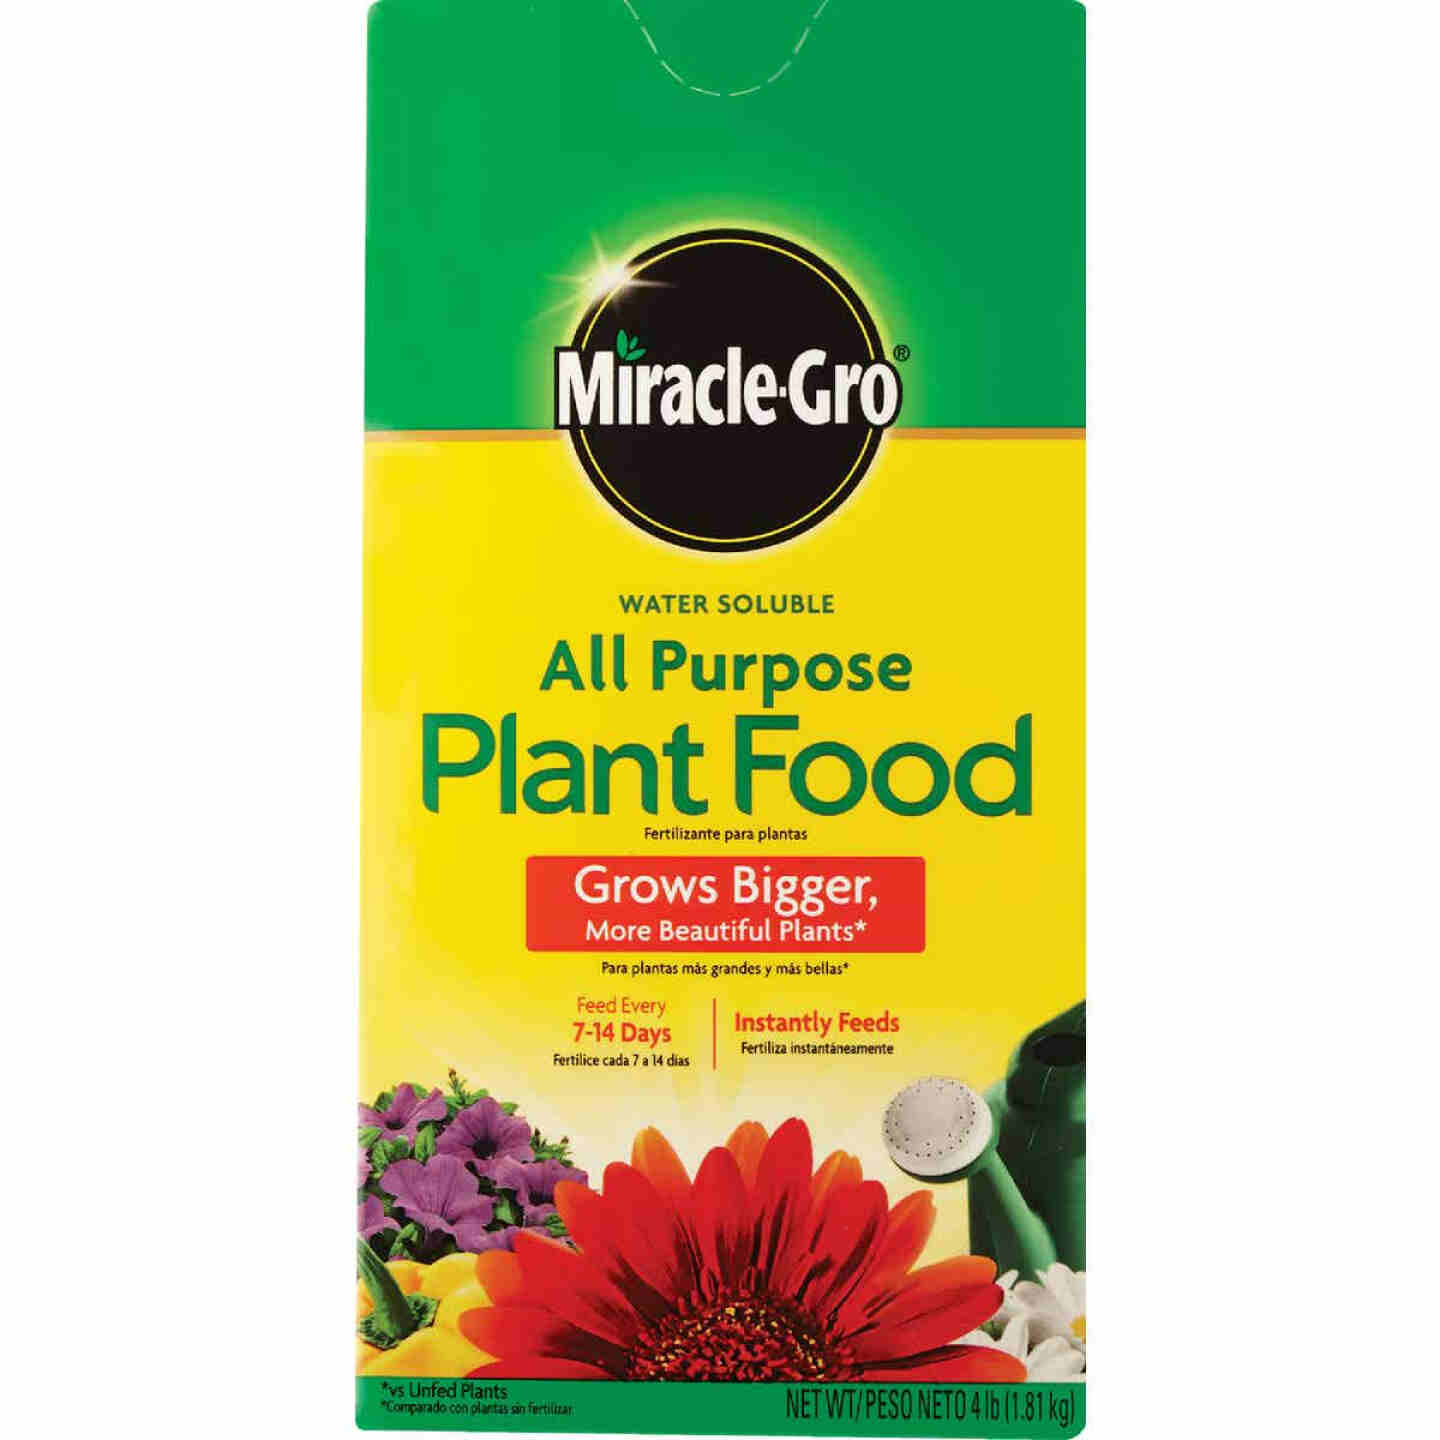 Miracle-Gro 4 Lb. 24-8-16 All Purpose Dry Plant Food Image 4